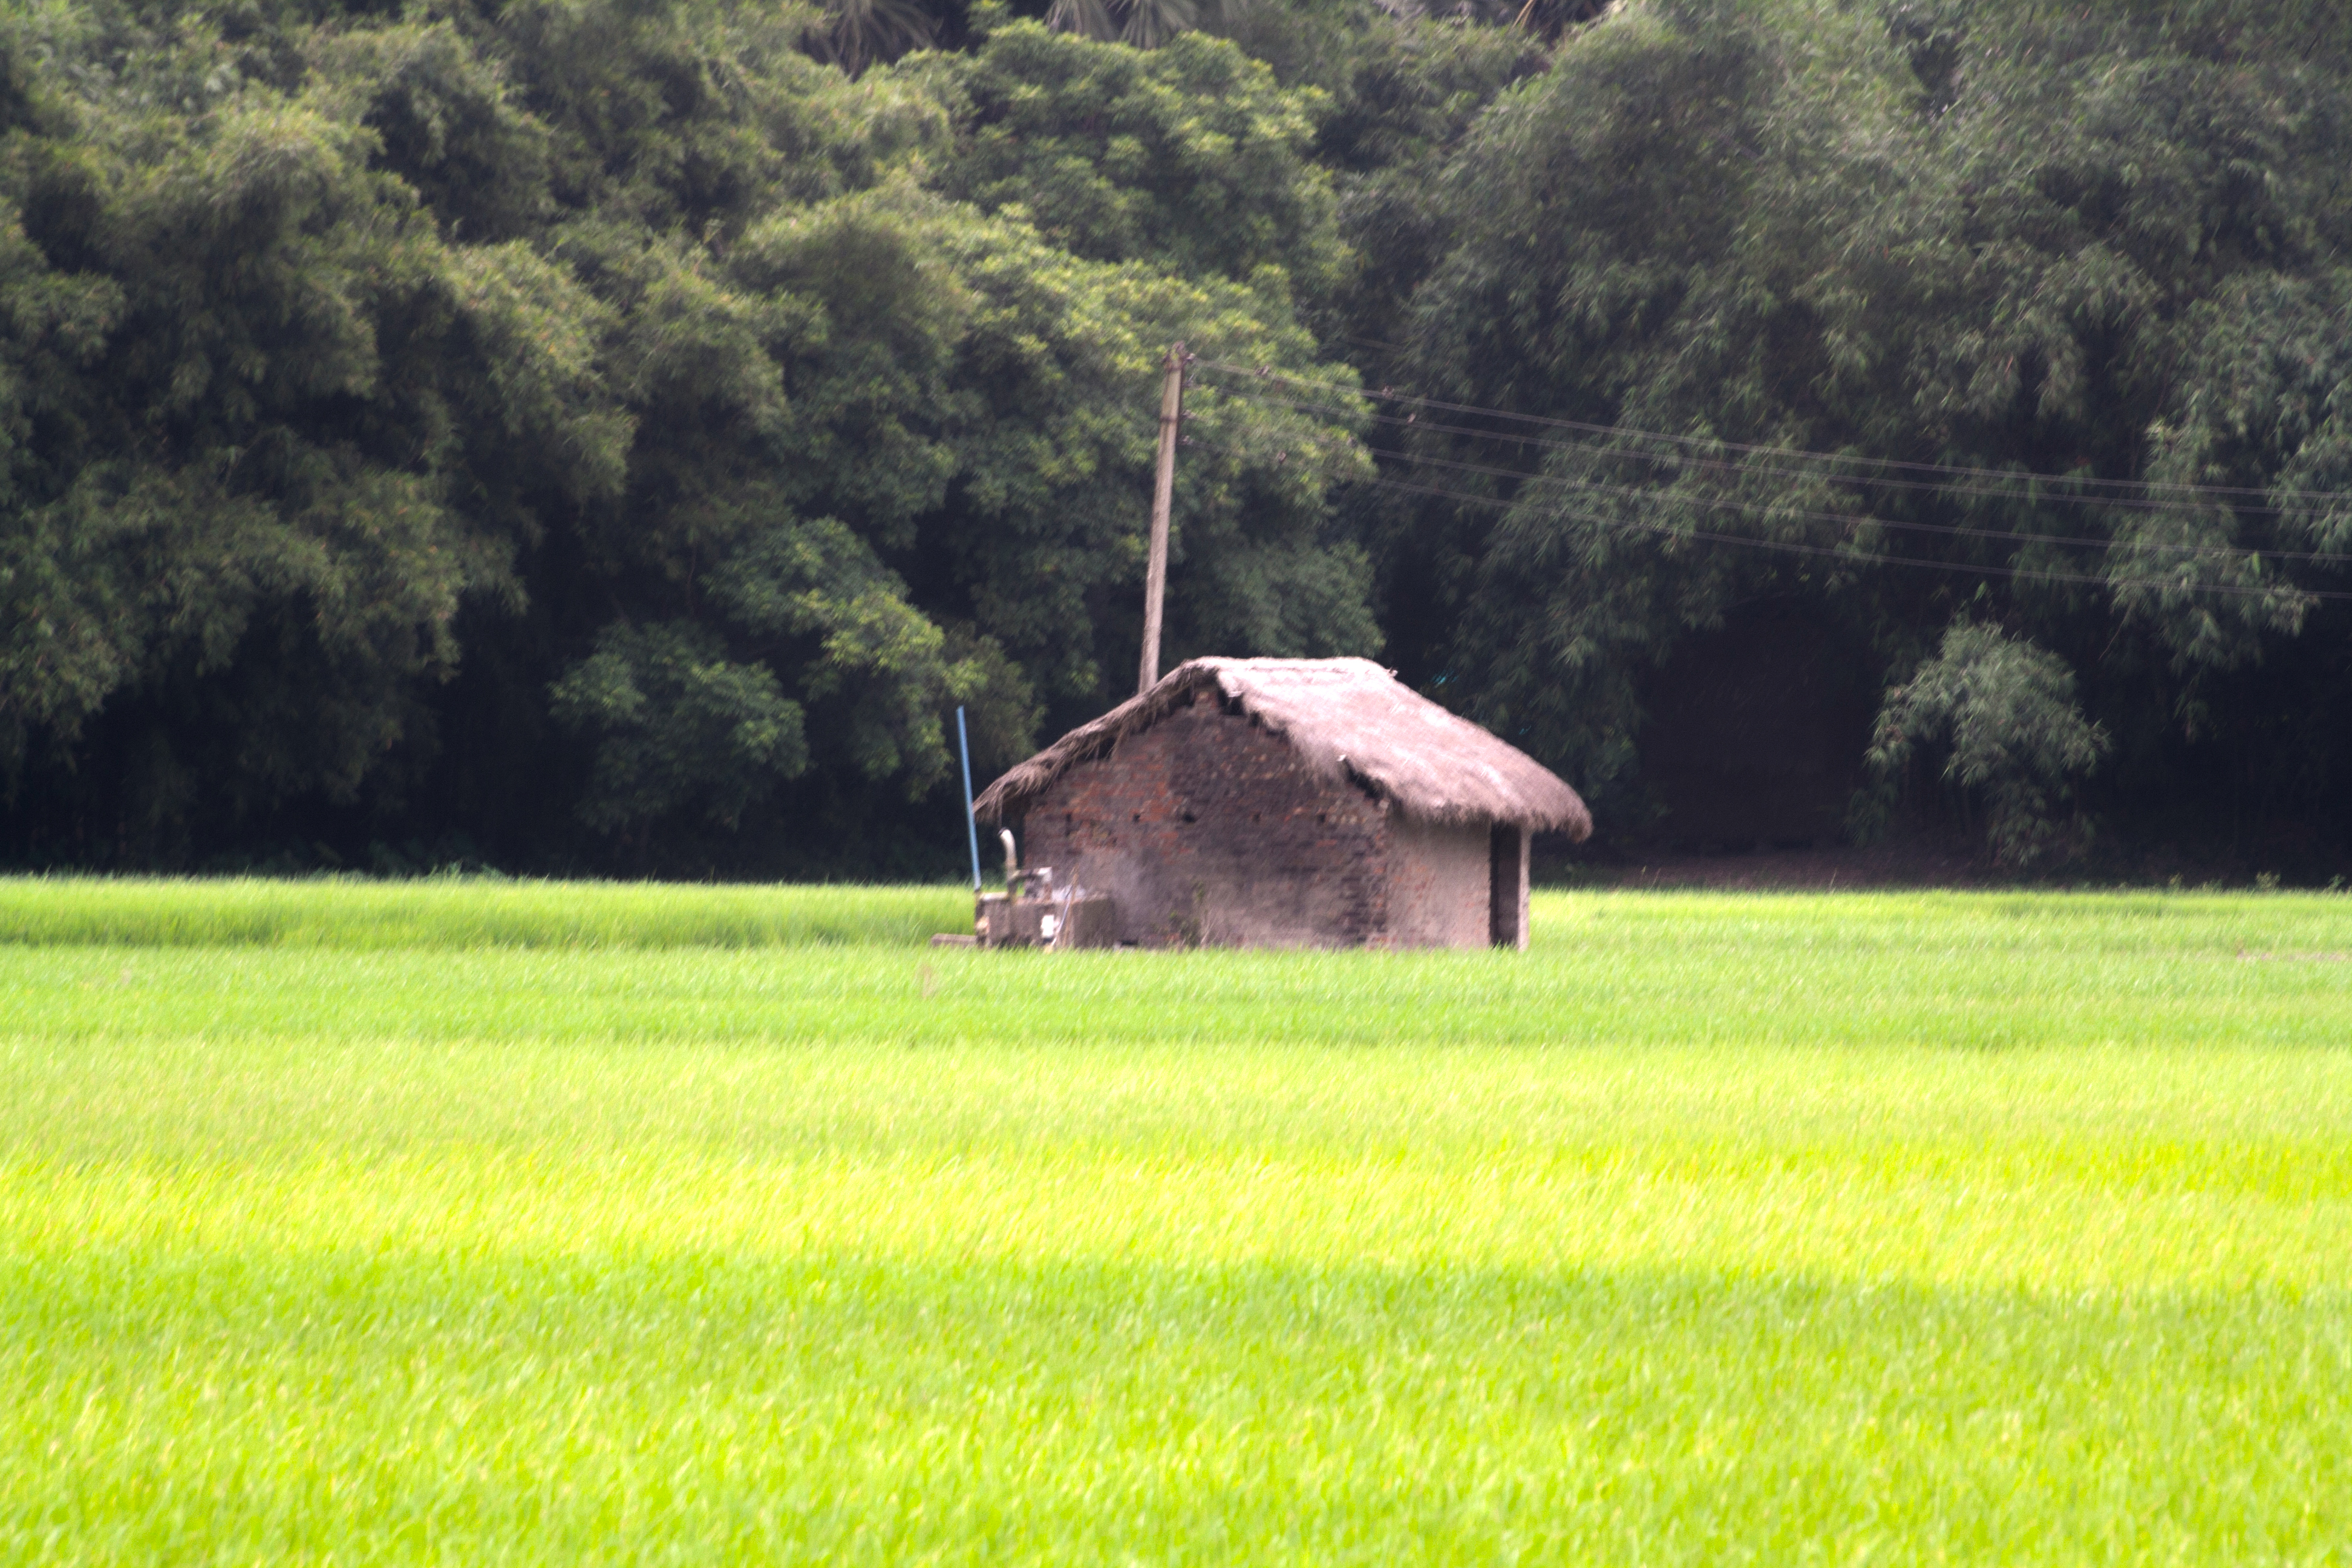 File:Village of West Bengal 13 jpg - Wikimedia Commons